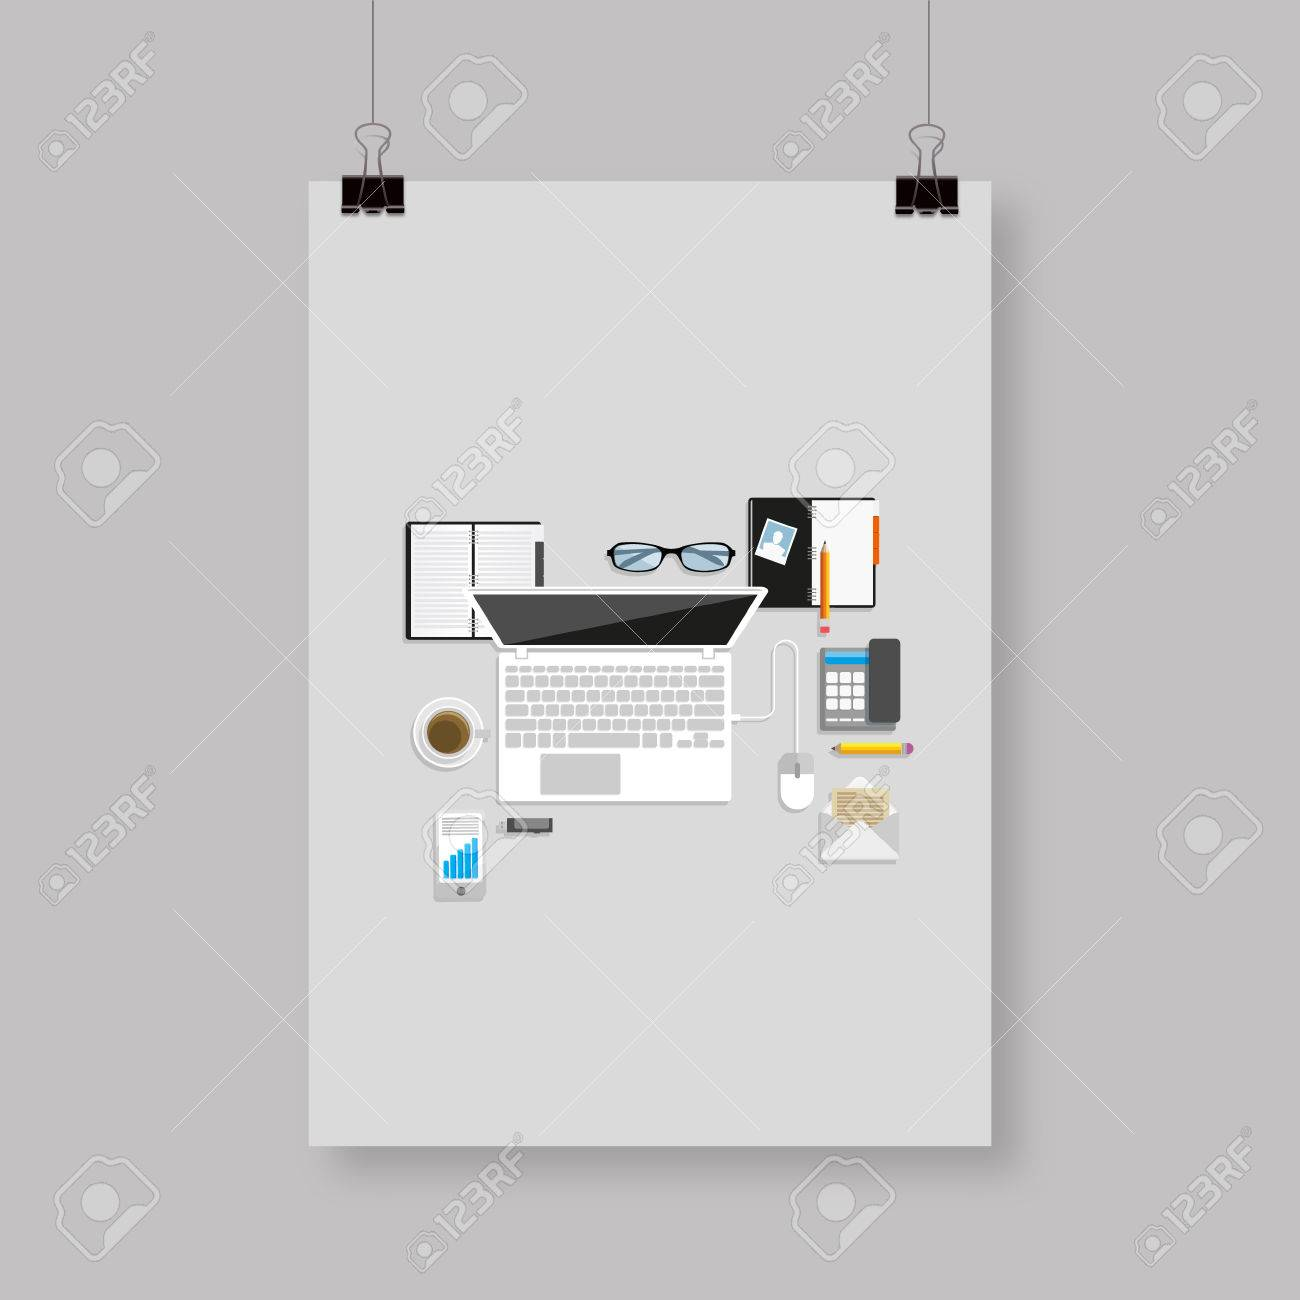 Business plan template flyer editable vector illustration for business plan template flyer editable vector illustration for your design graphic design stock vector 41151164 accmission